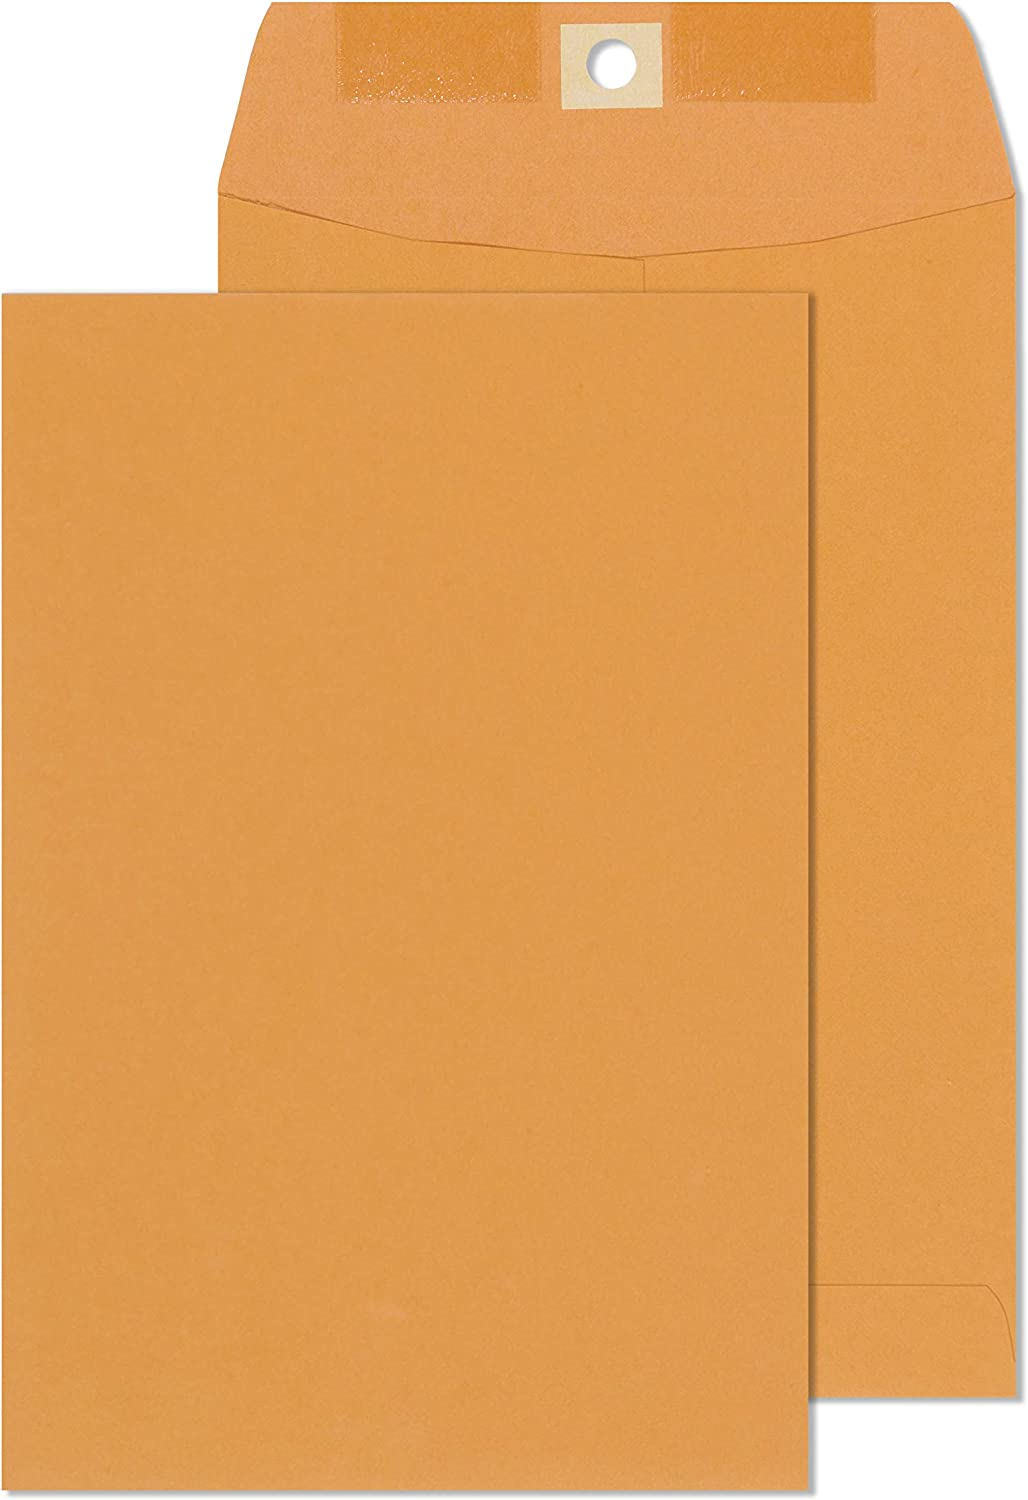 Clasp Envelopes – 6x9 Inch Brown Kraft Catalog Envelopes with Clasp Closure & Gummed Seal – 28lb Heavyweight Paper Envelopes for Home, Office, Business, Legal or School - 30 Pack